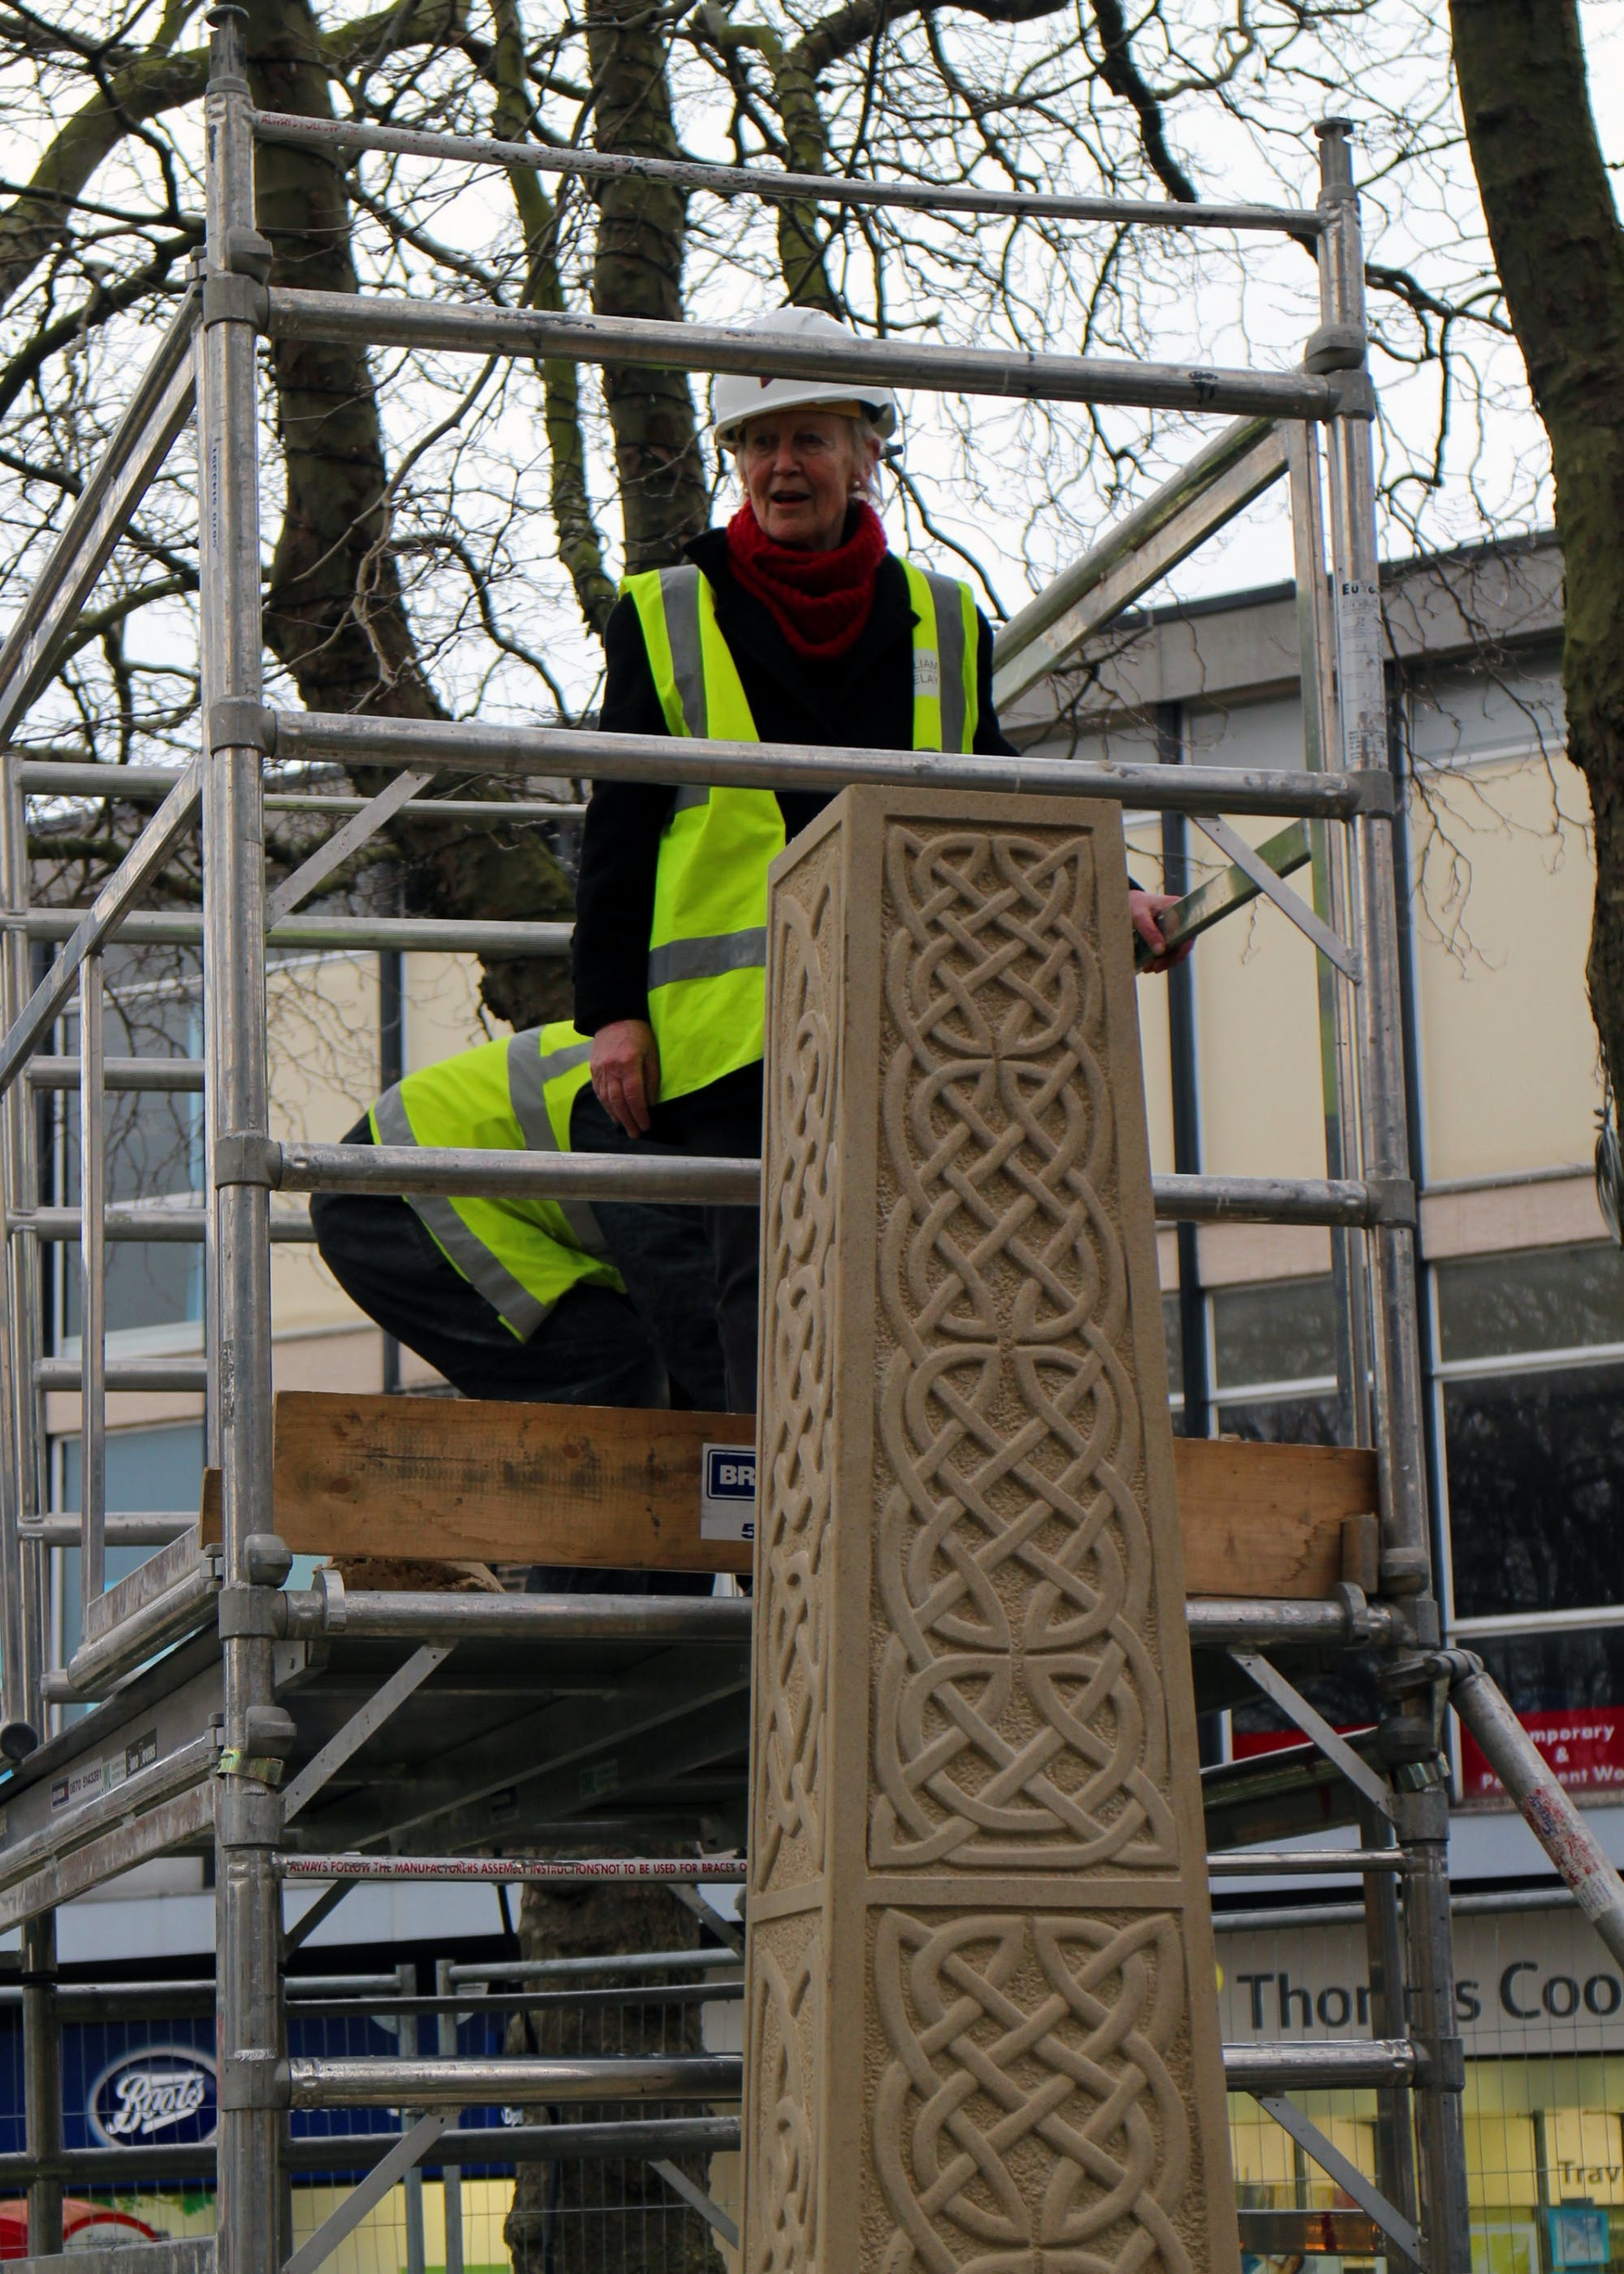 Celia climbs up the scaffolding to cement the cross in place